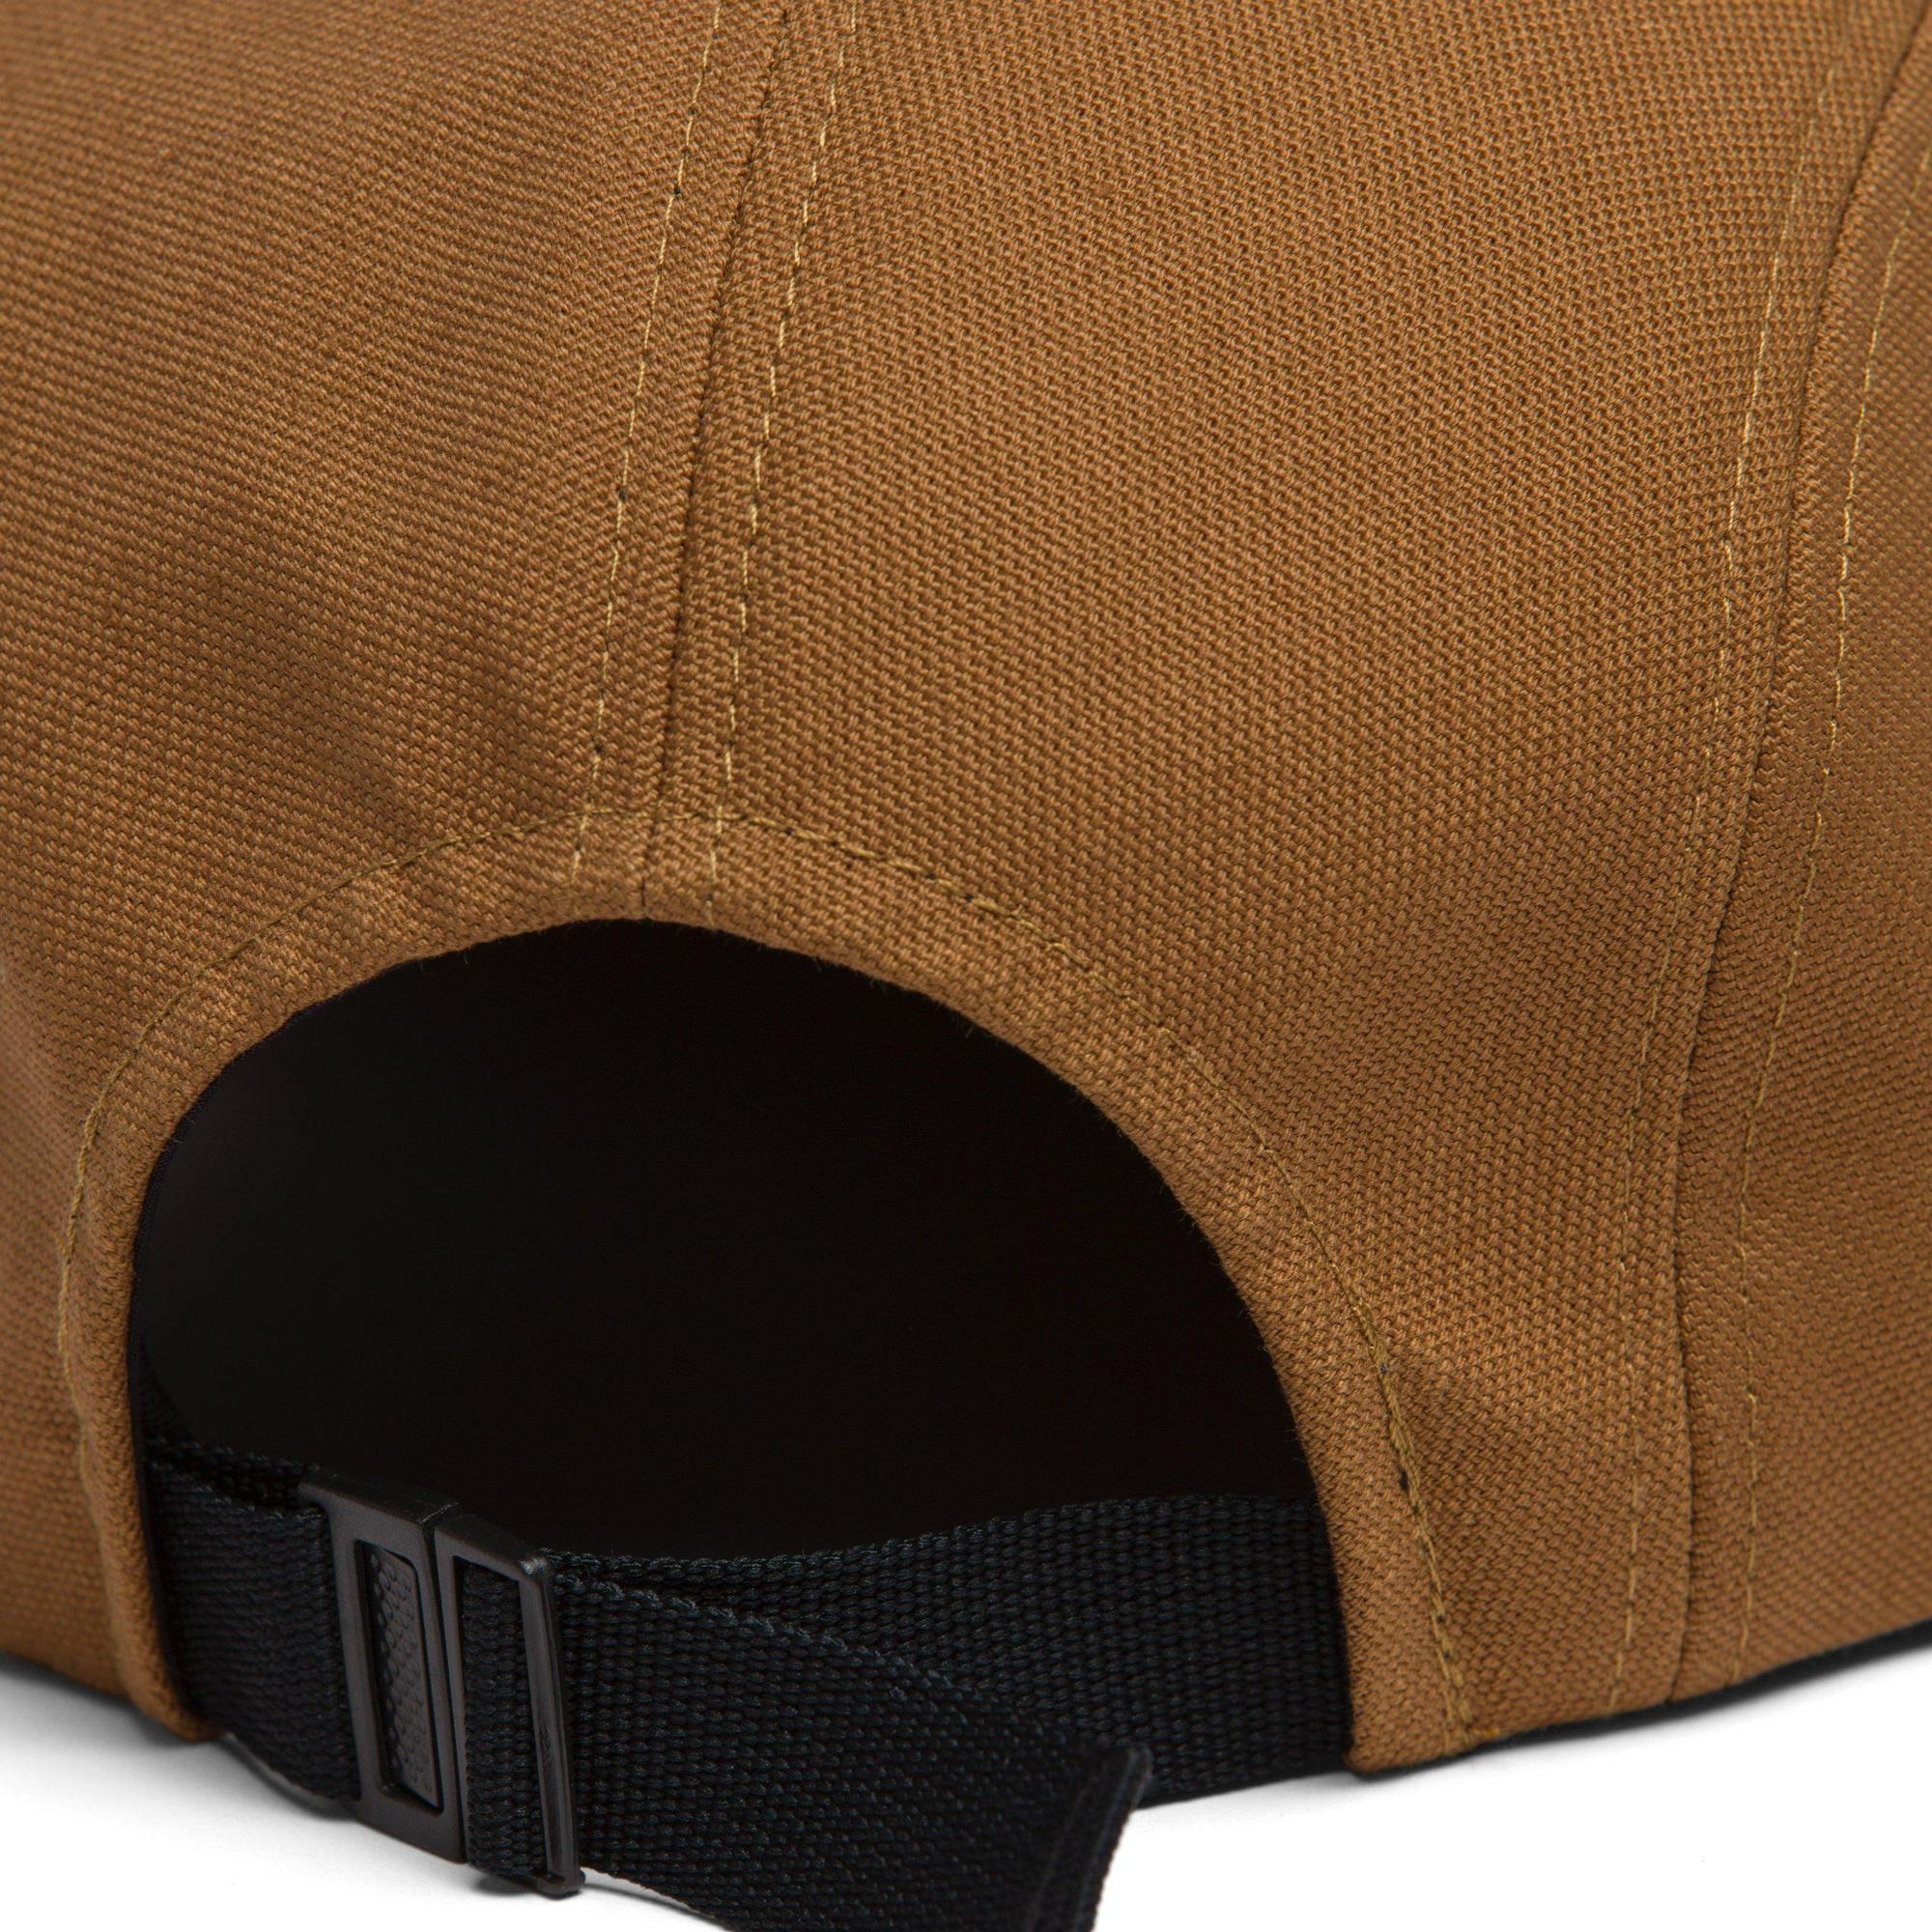 Carhartt Backley Cap Product Photo #2